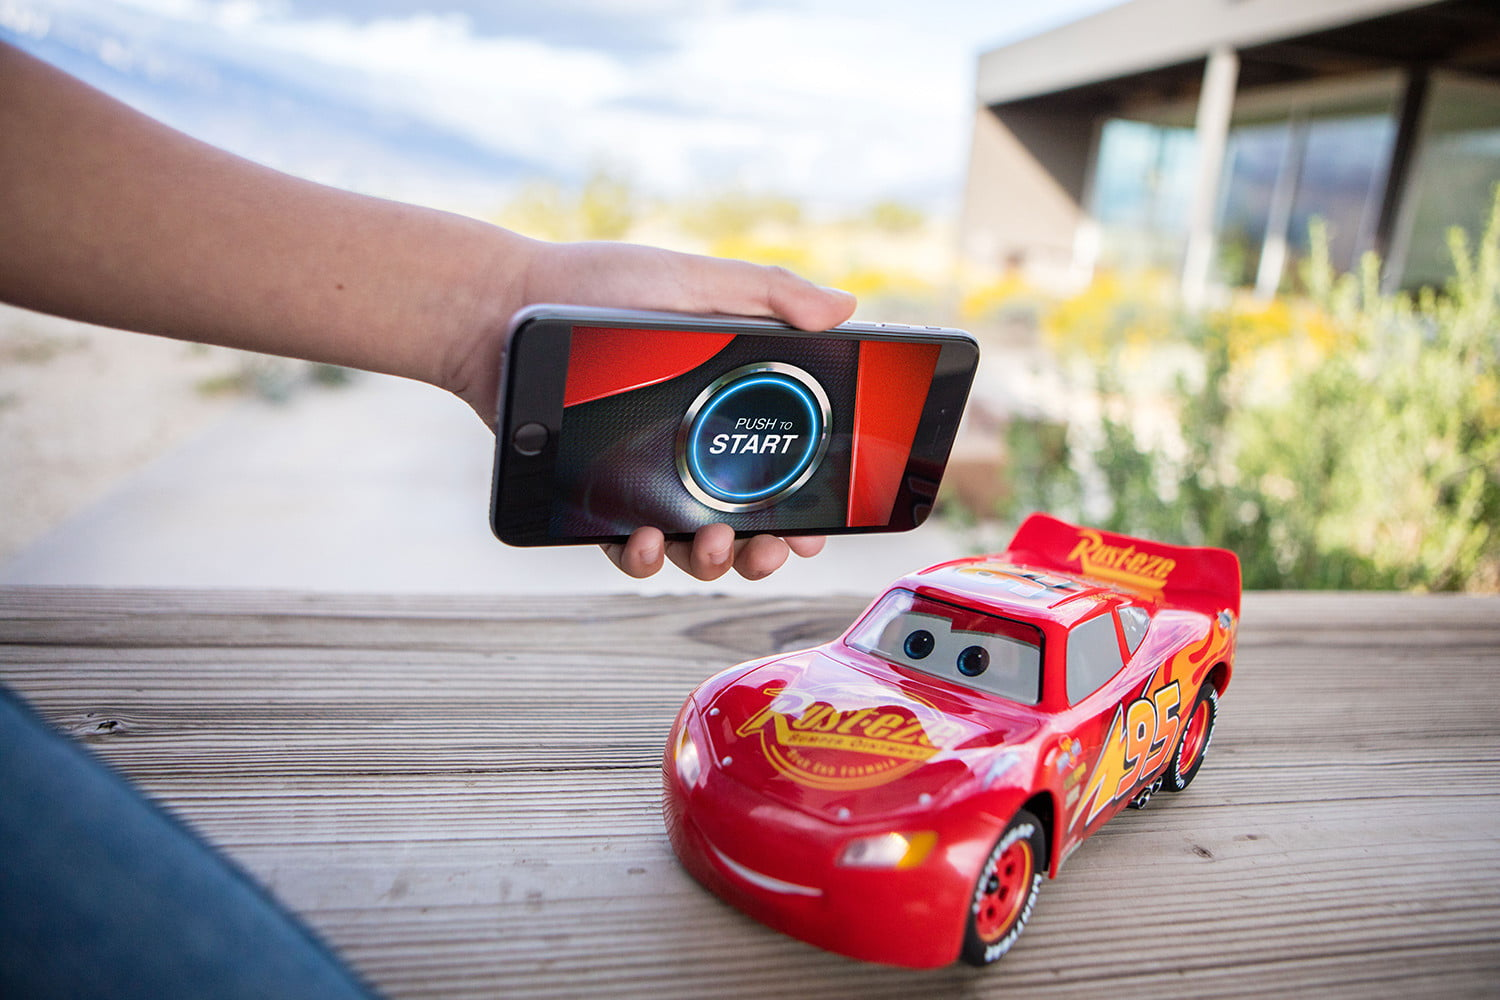 Sphero's Ultimate Lightning McQueen is a Toy Racing Car ...